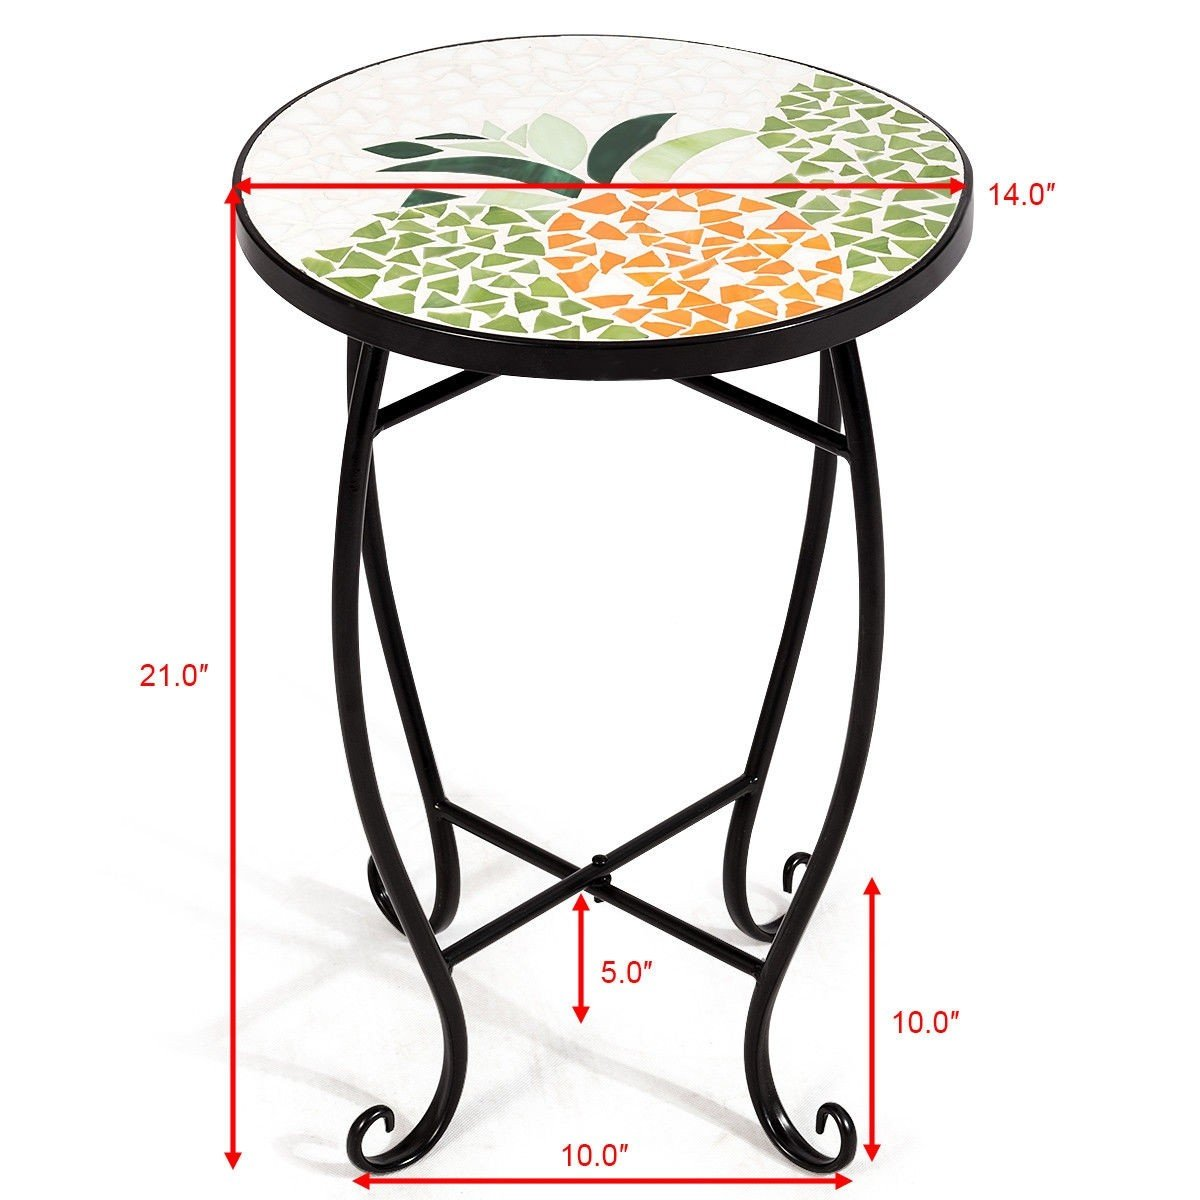 custpromo mosaic accent table metal round side zaltana outdoor plant stand cobalt glass top indoor garden patio sweet pineapple kitchen black gloss sideboard contemporary